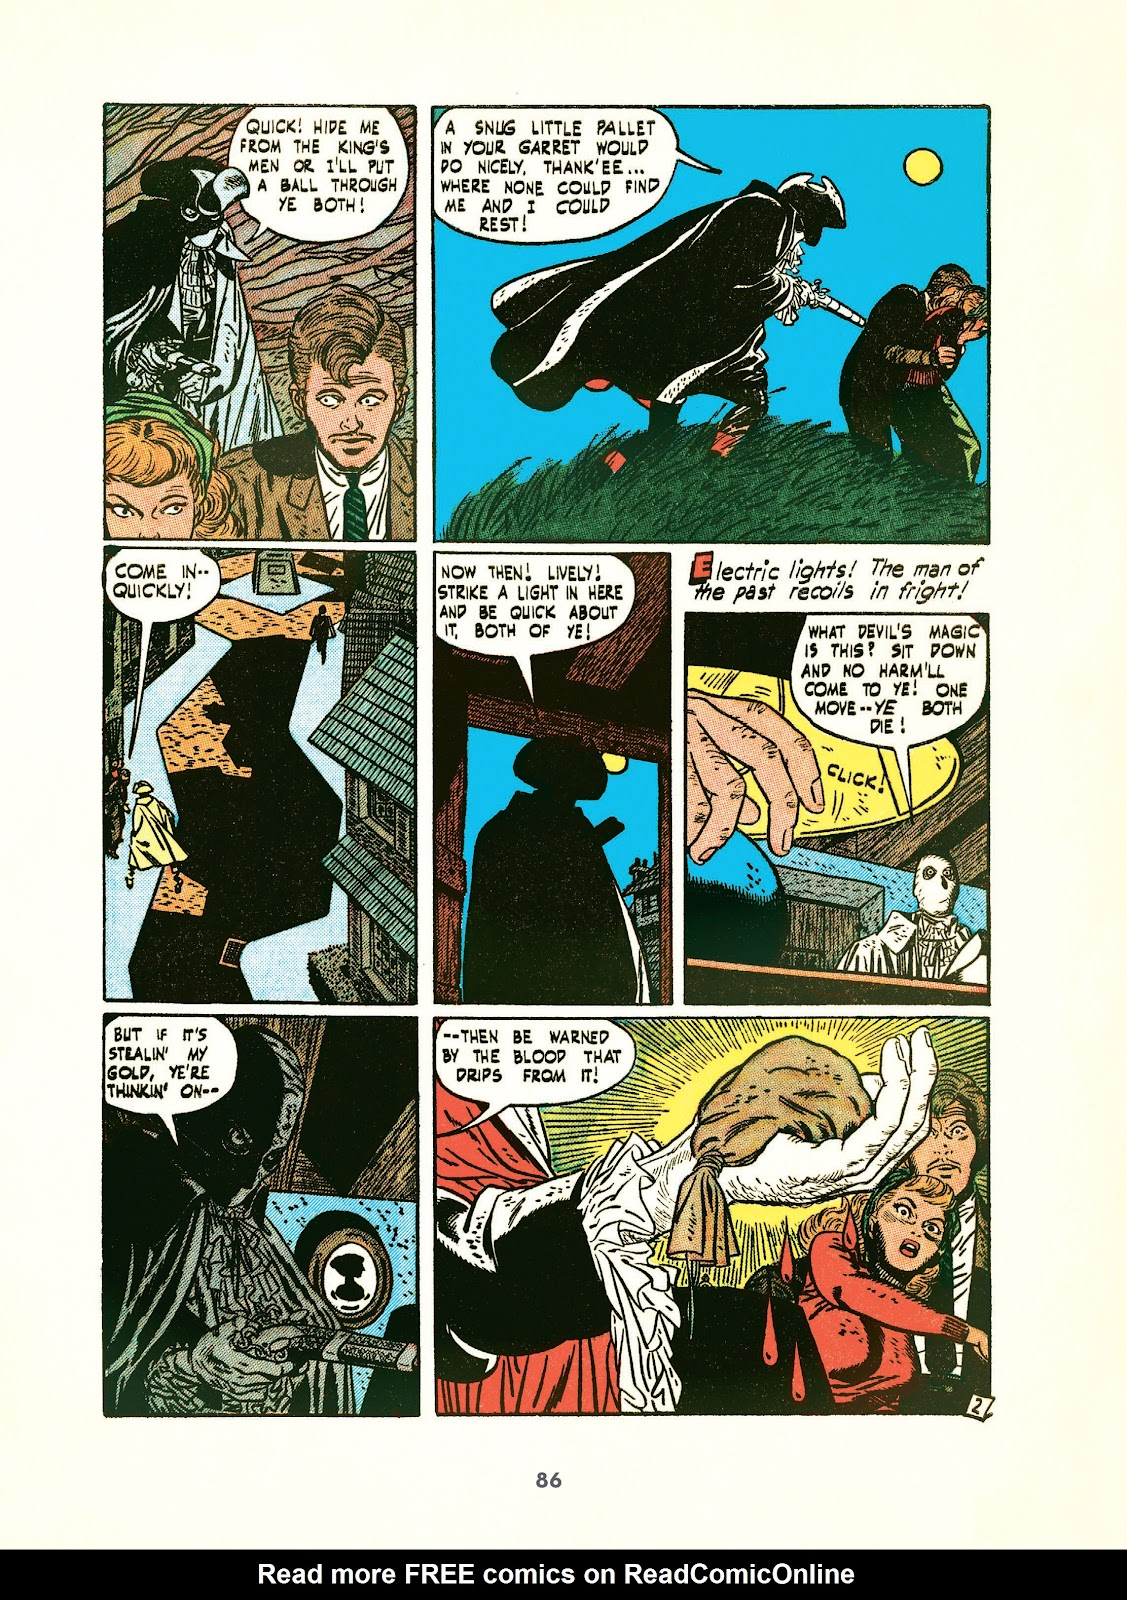 Read online Setting the Standard: Comics by Alex Toth 1952-1954 comic -  Issue # TPB (Part 1) - 85